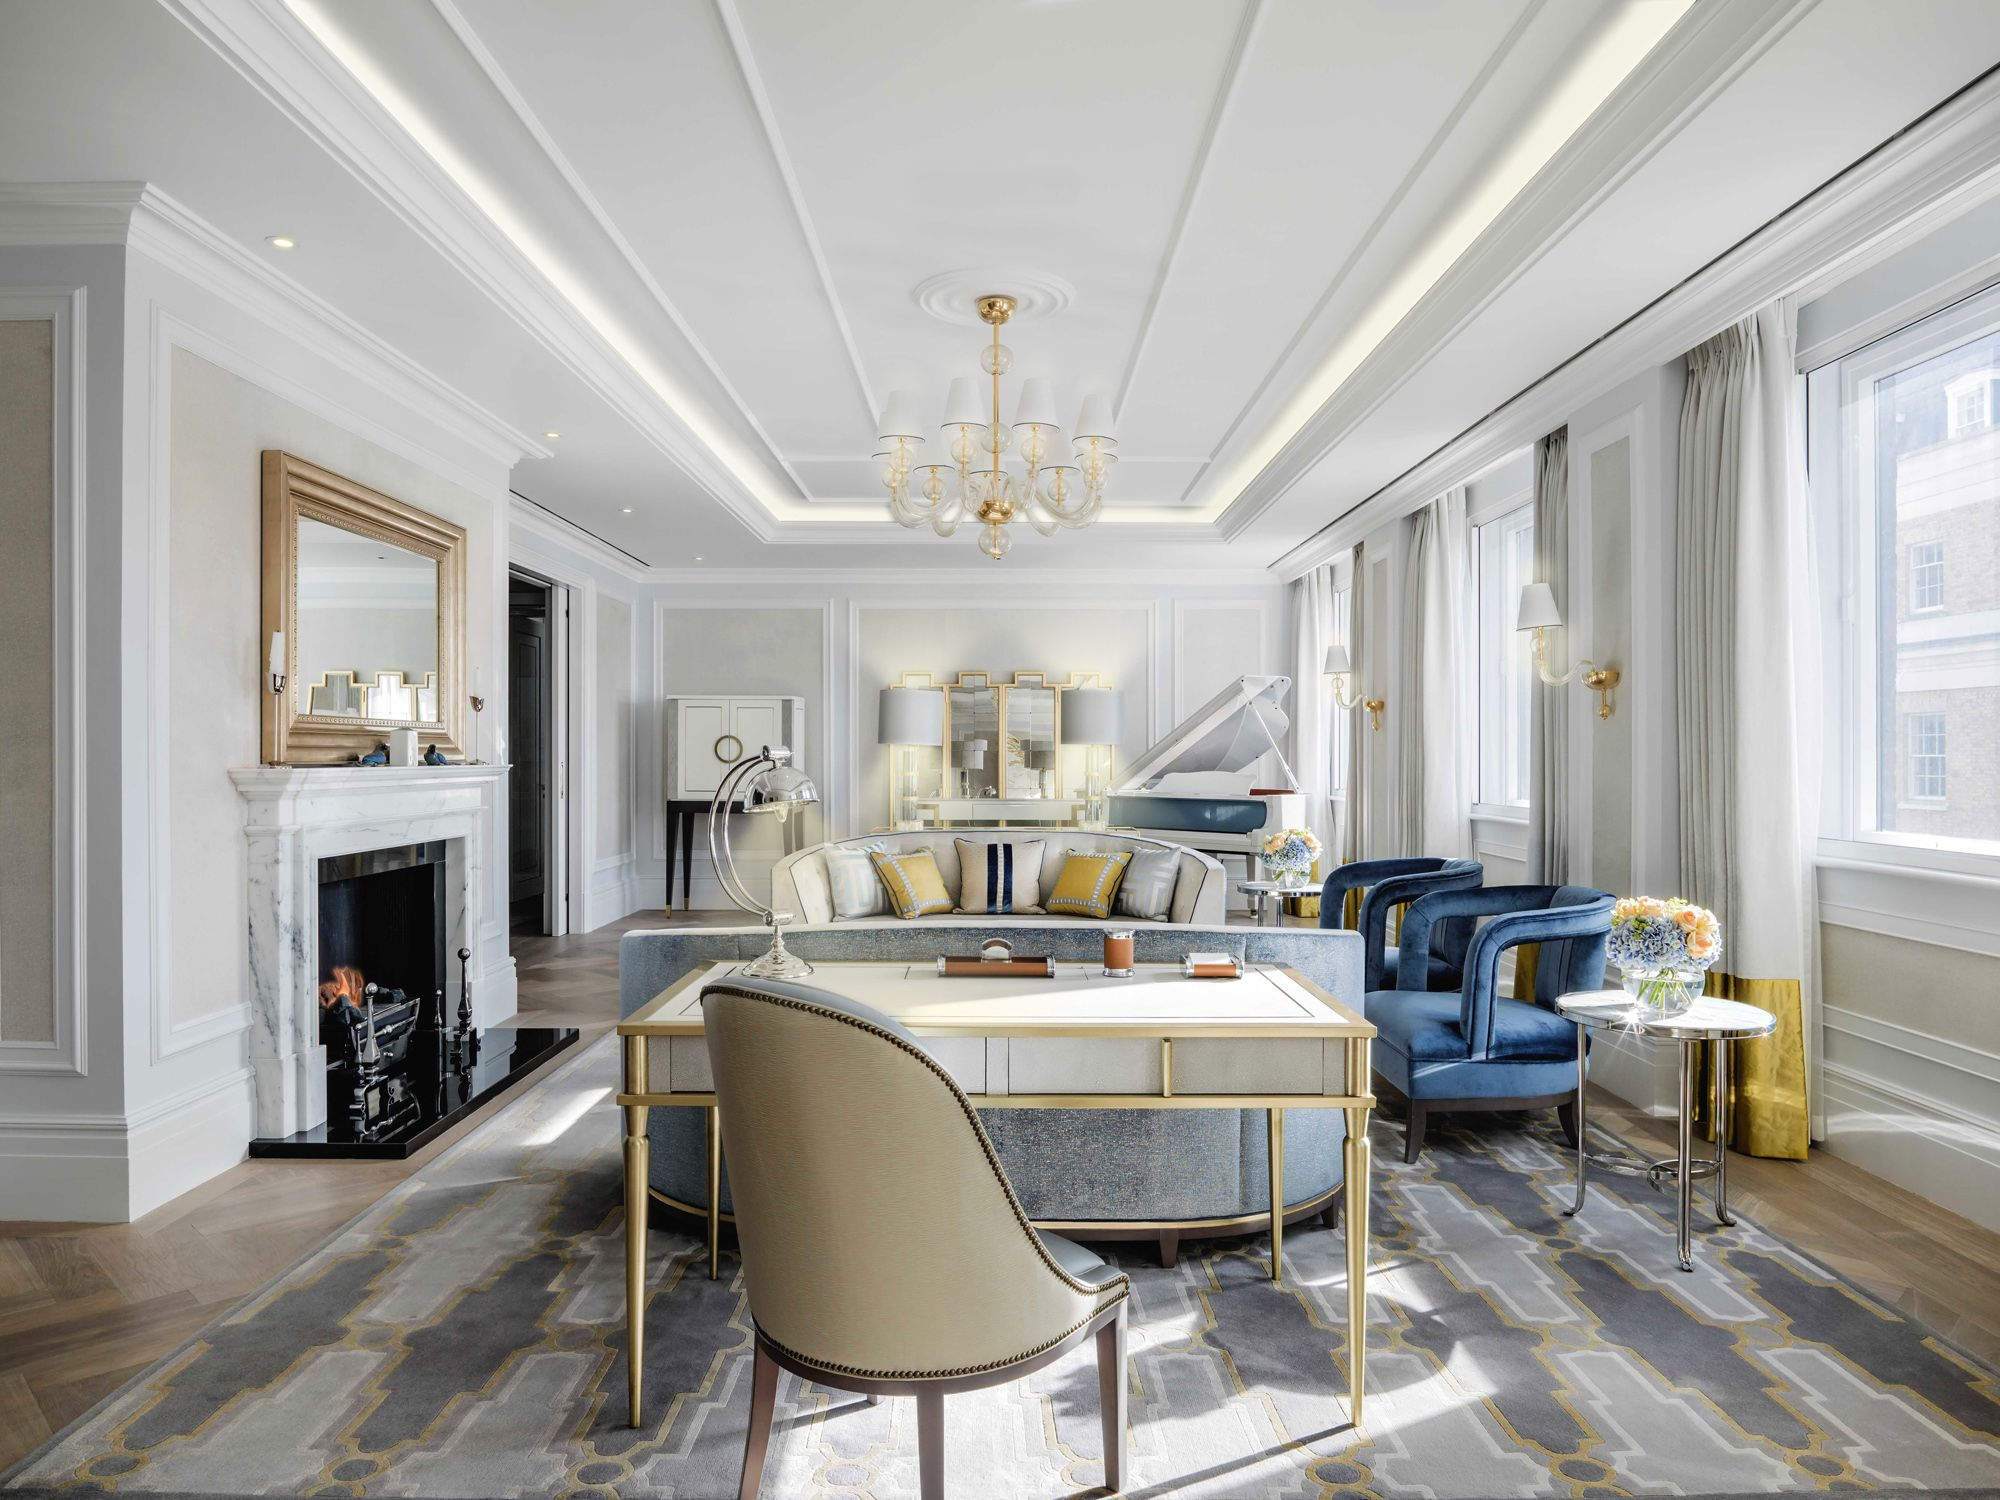 The Sterling Suite At The Langham London Design By Richmond International London With Ice